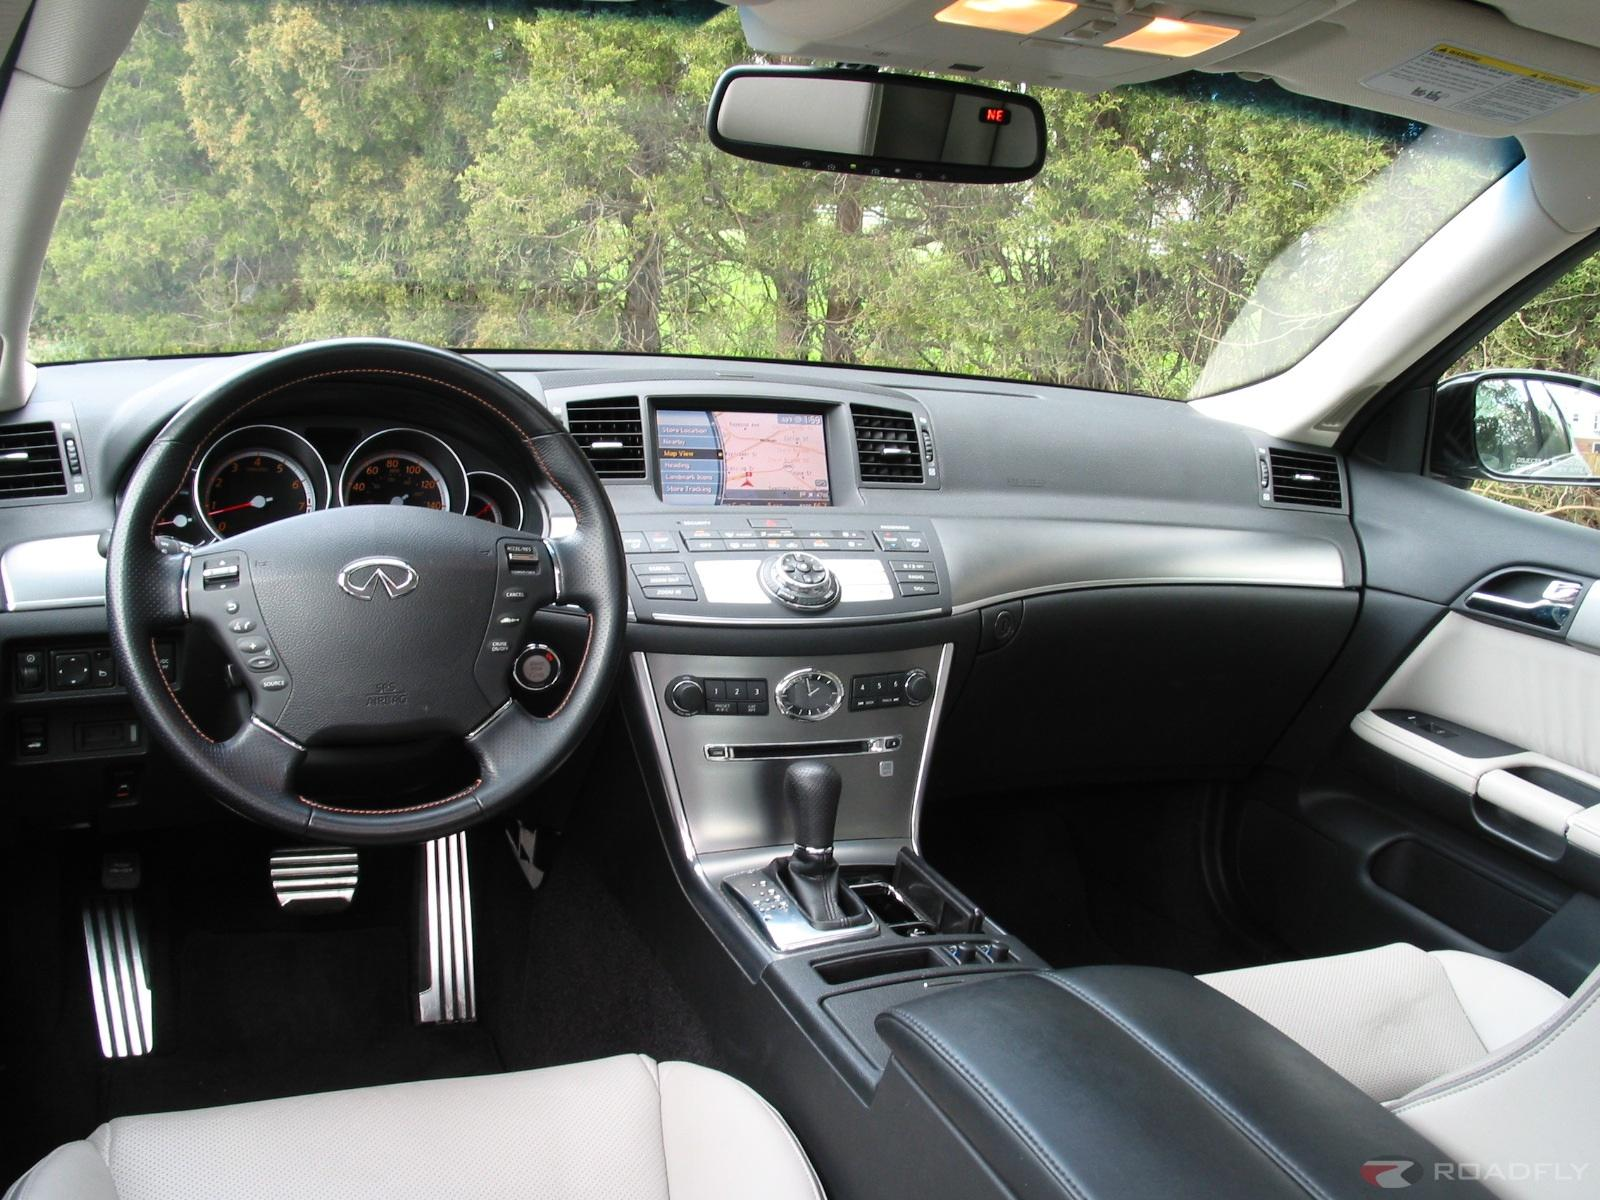 2009 infiniti m45 black images hd cars wallpaper 2009 infiniti m45 sport image collections hd cars wallpaper 2009 infiniti m45 information and photos zombiedrive vanachro Gallery